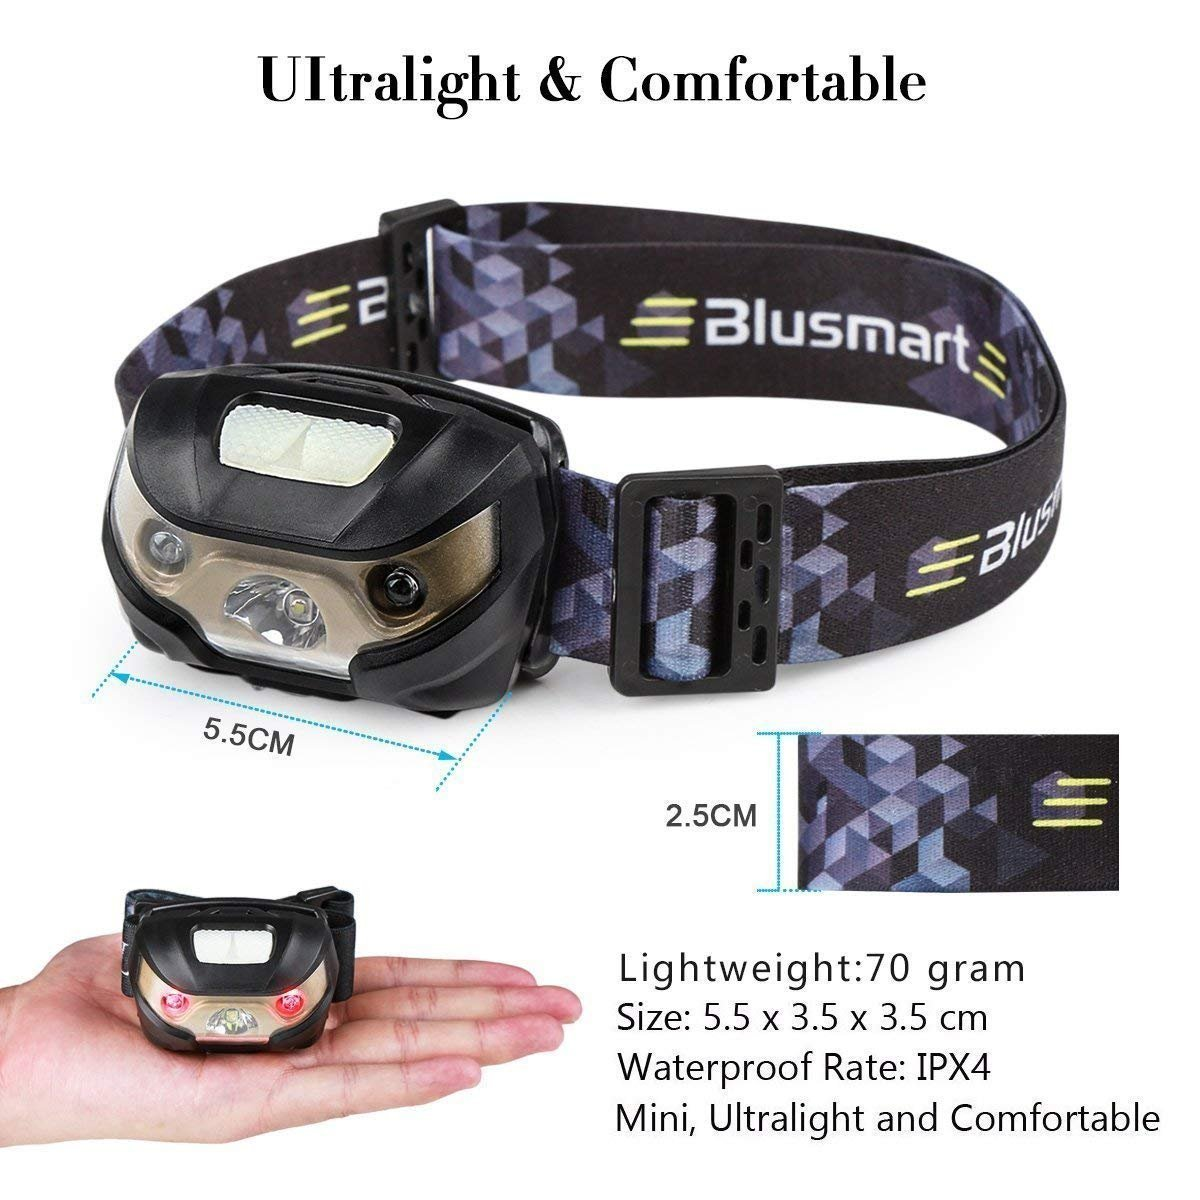 Lampe Frontale Blusmart Torche Frontal Led Usb Lampes Frontales